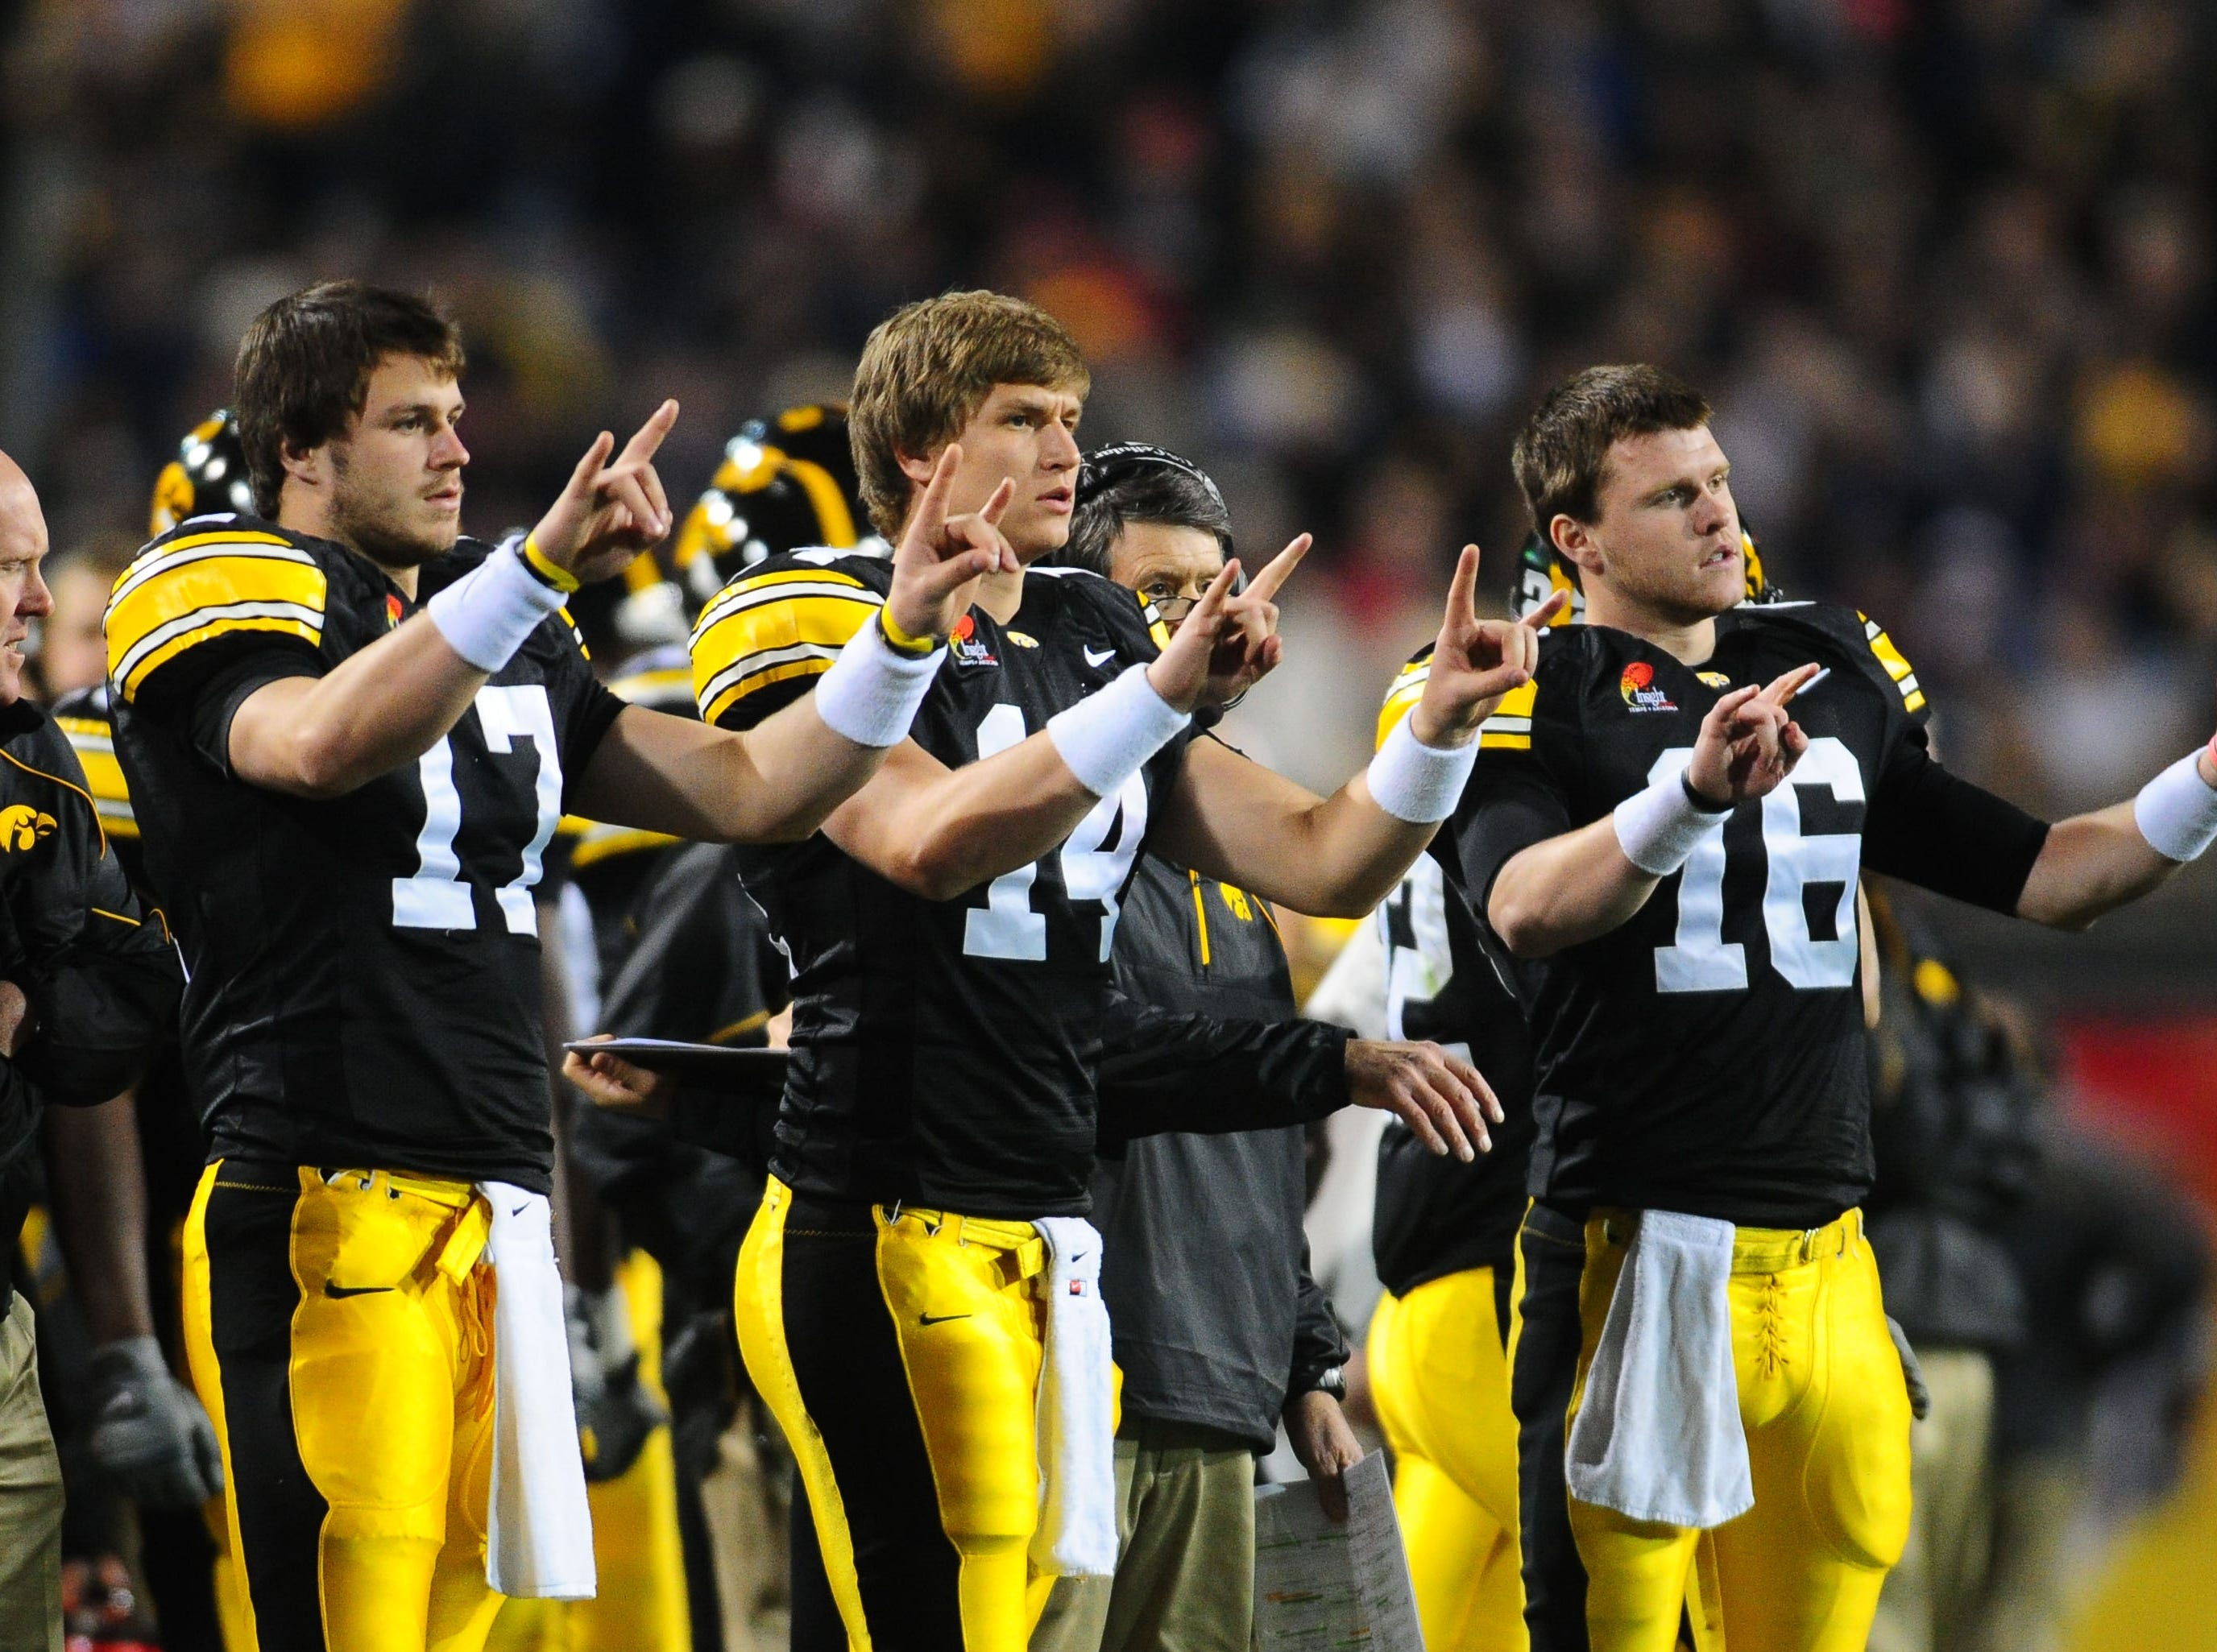 Dec. 28, 2010; Tempe, AZ, USA; Iowa Hawkeyes quarterbacks (from left) A.J. Derby , John Wienke and James Vandenberg signal a play from the sidelines against the Missouri Tigers in the 2010 Insight Bowl at Sun Devil Stadium. Iowa defeated Missouri 27-24. Mandatory Credit: Mark J. Rebilas-USA TODAY Sports